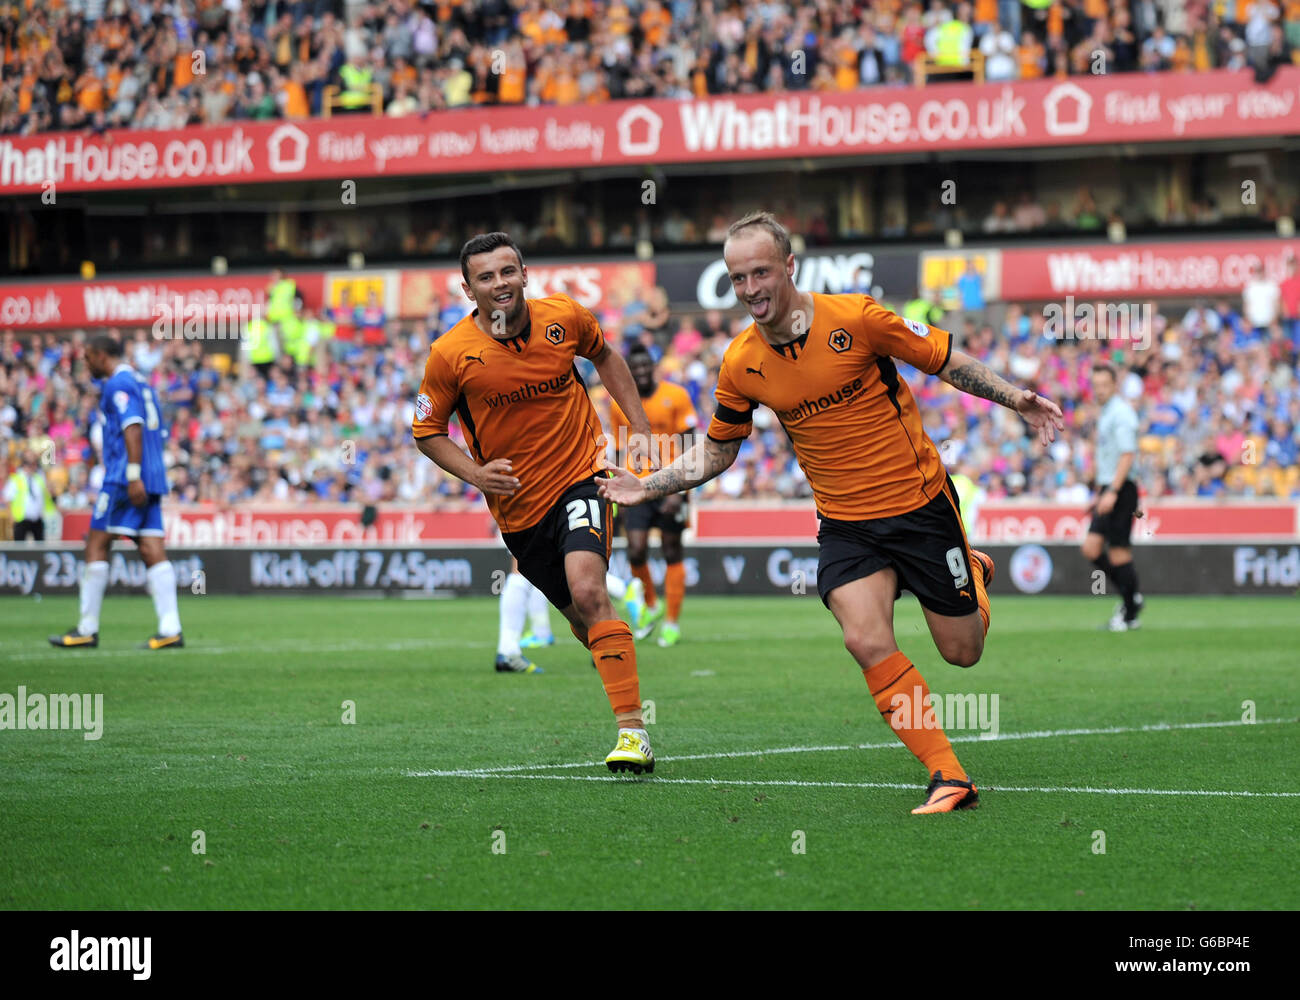 Gillingham v wolves betting preview betting college football week 12 highlights